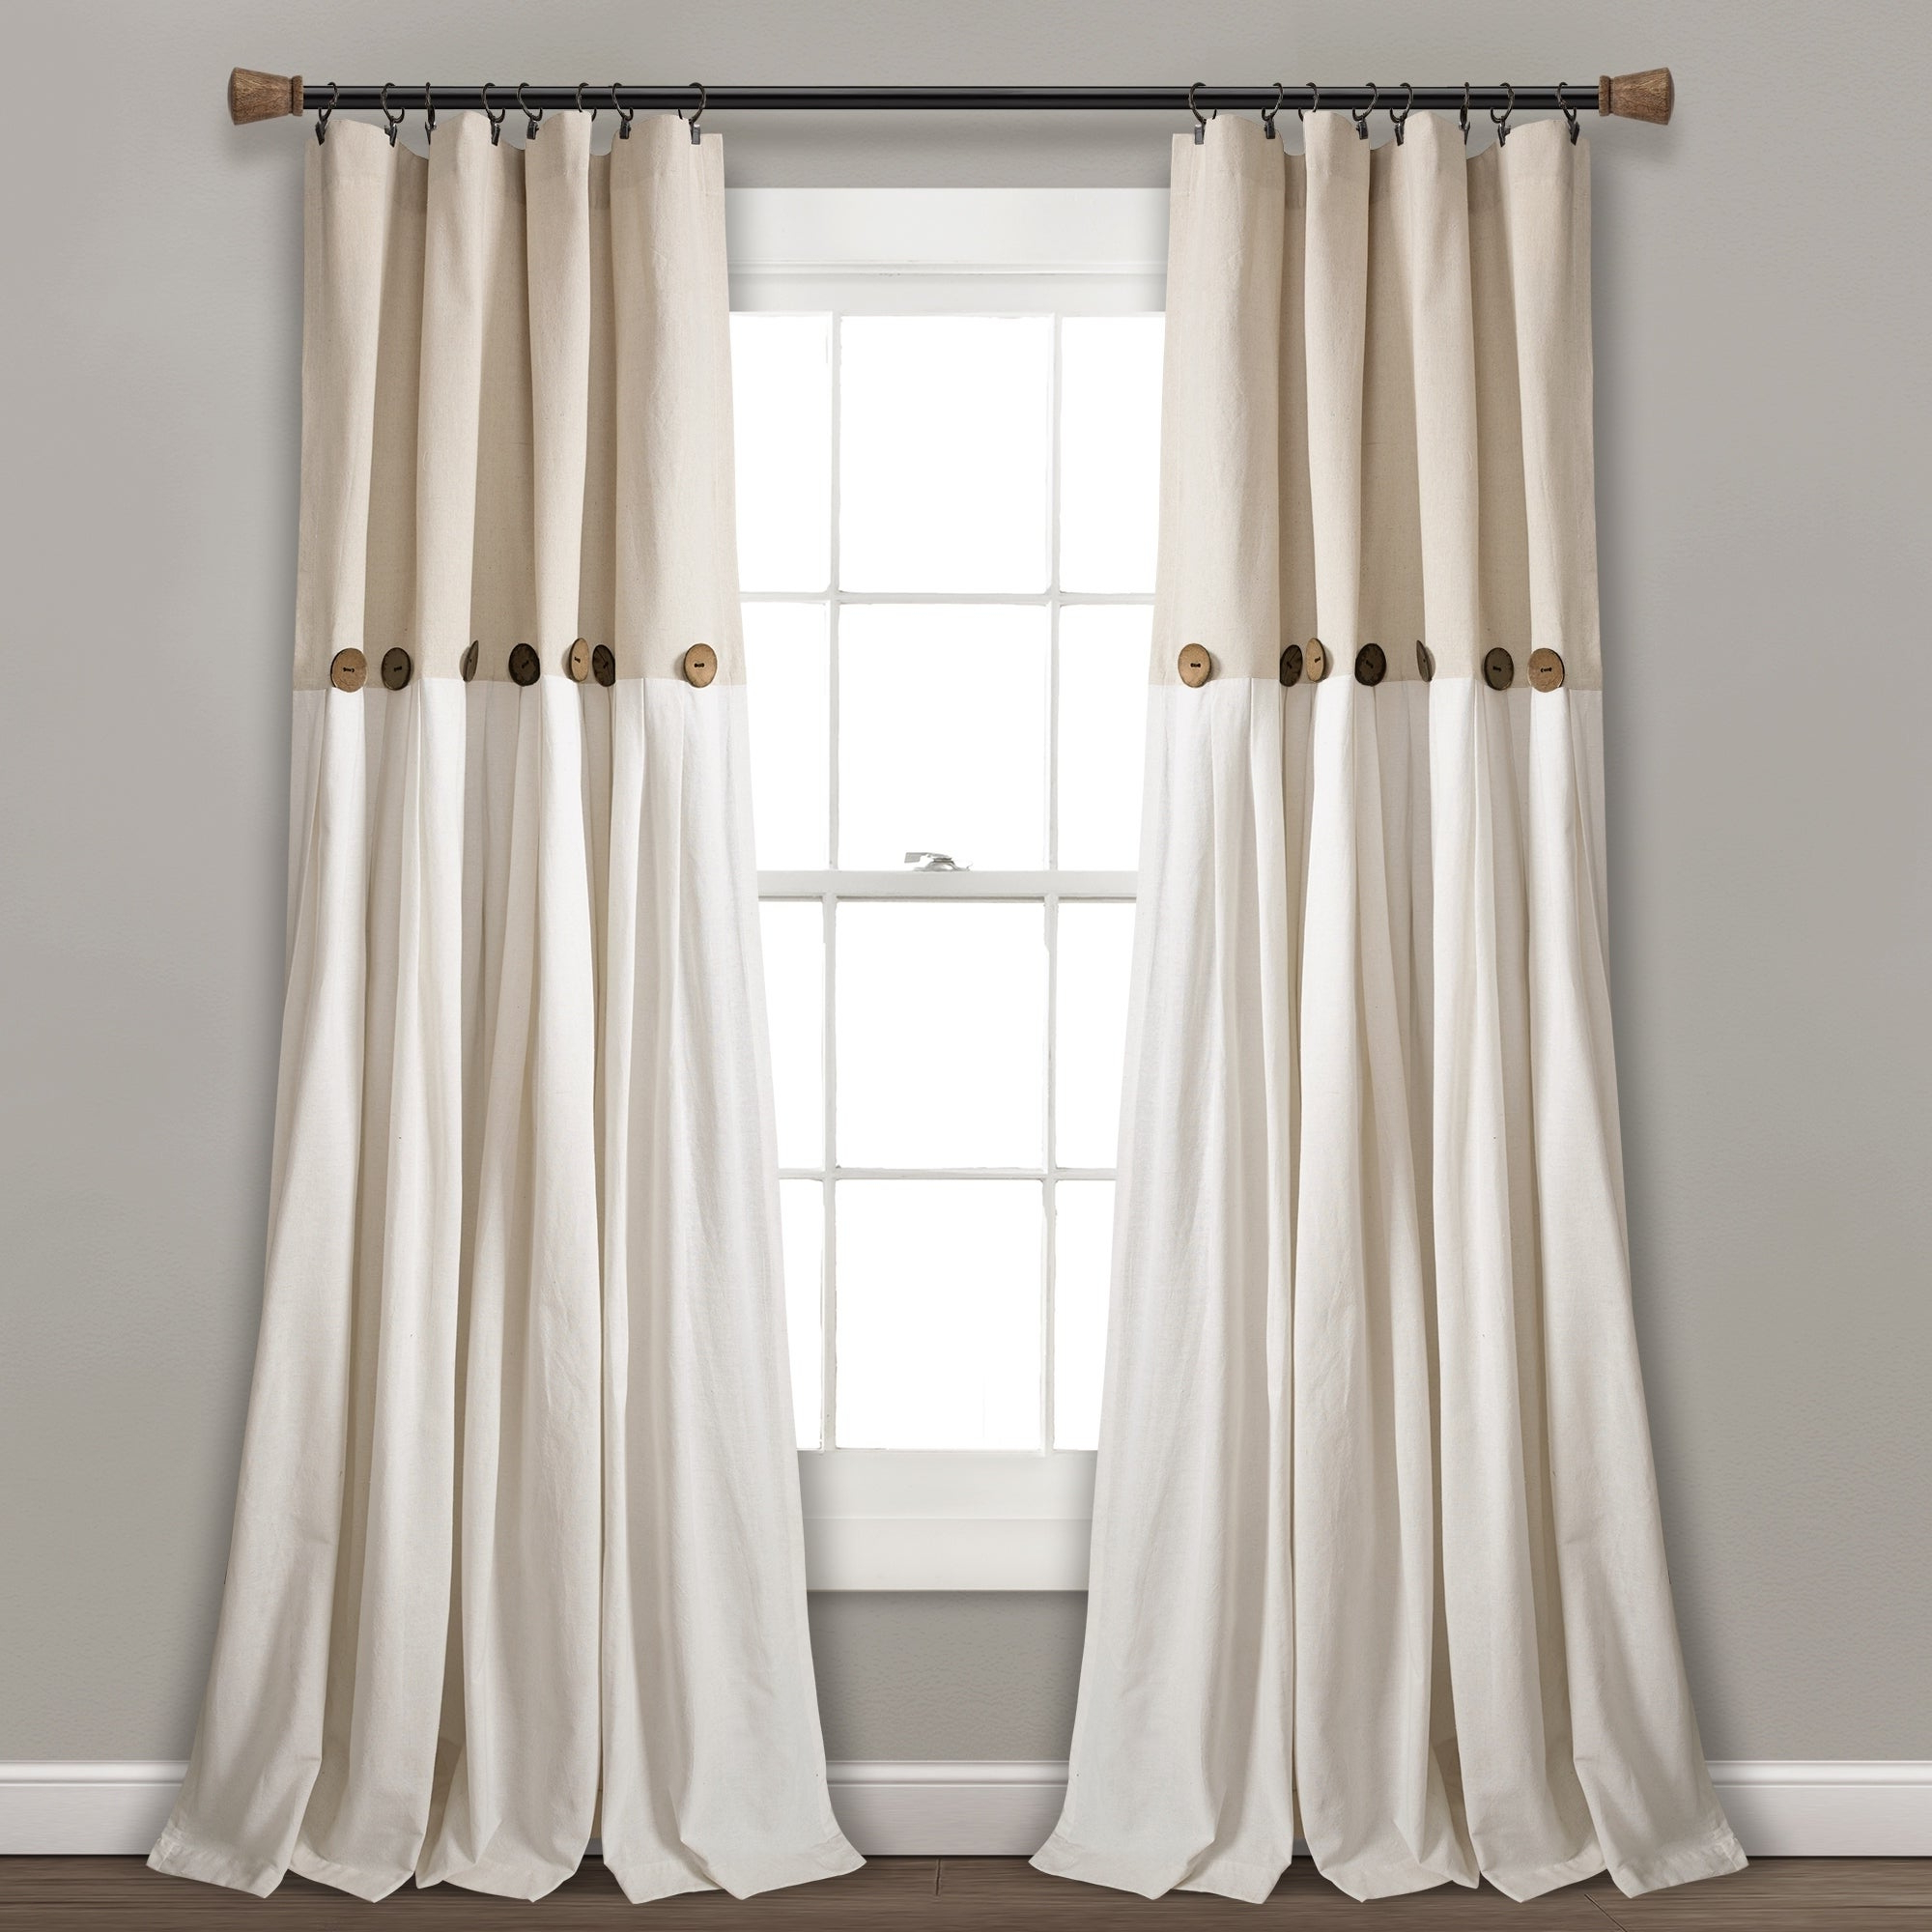 Linen Button Window Curtains Single Panel With Regard To Well Liked Lush Decor Linen Button Window Curtain Single Panel (View 1 of 20)